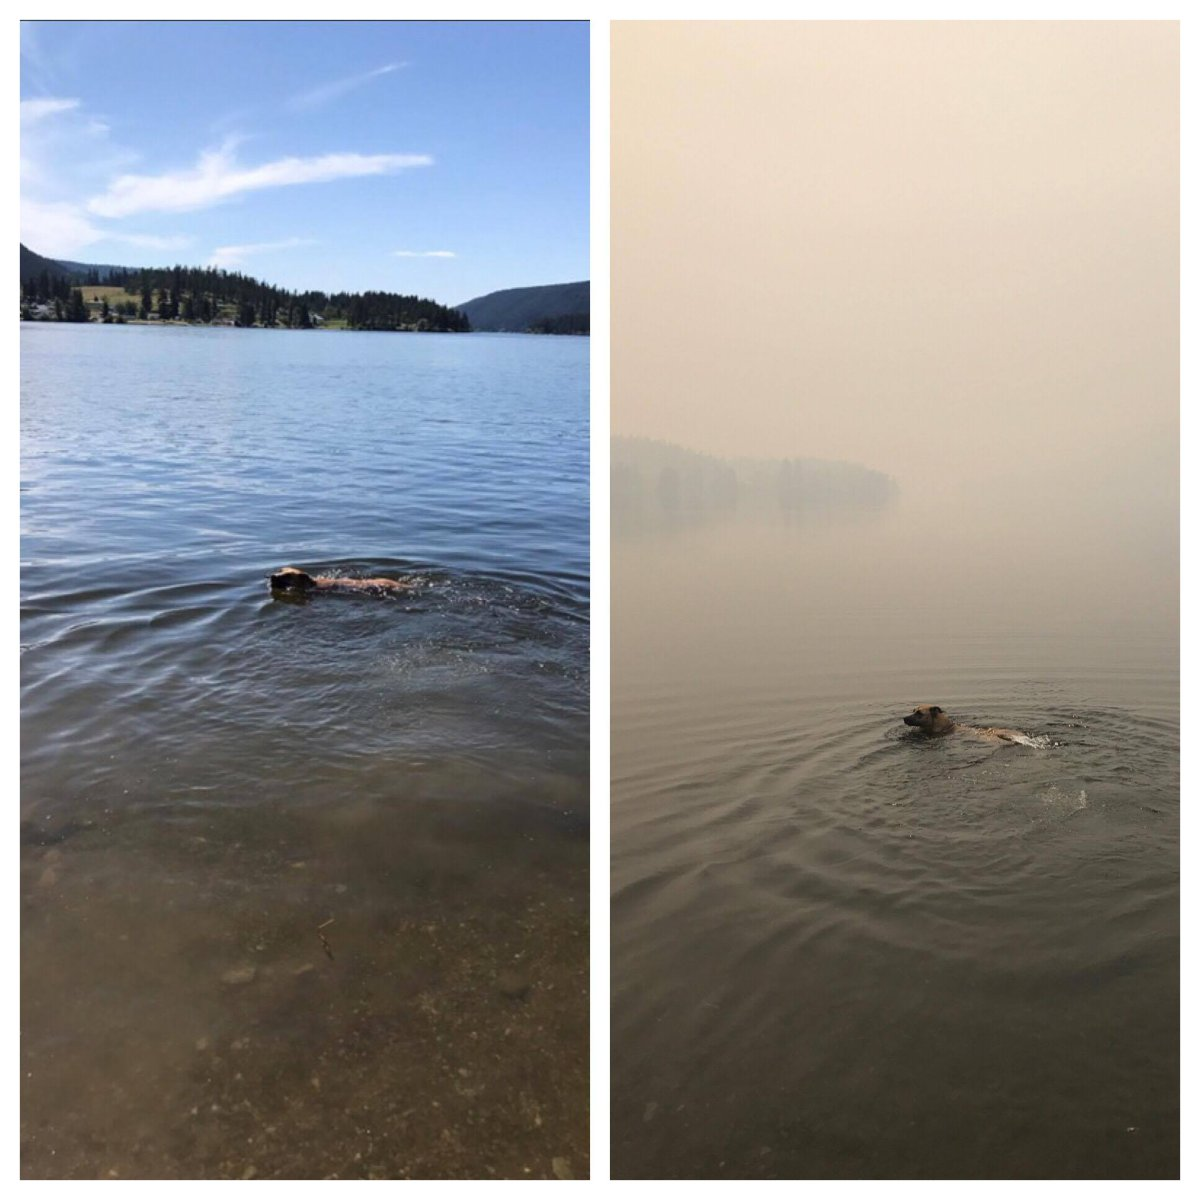 This photo shows the same area in Williams Lake, just one week apart.